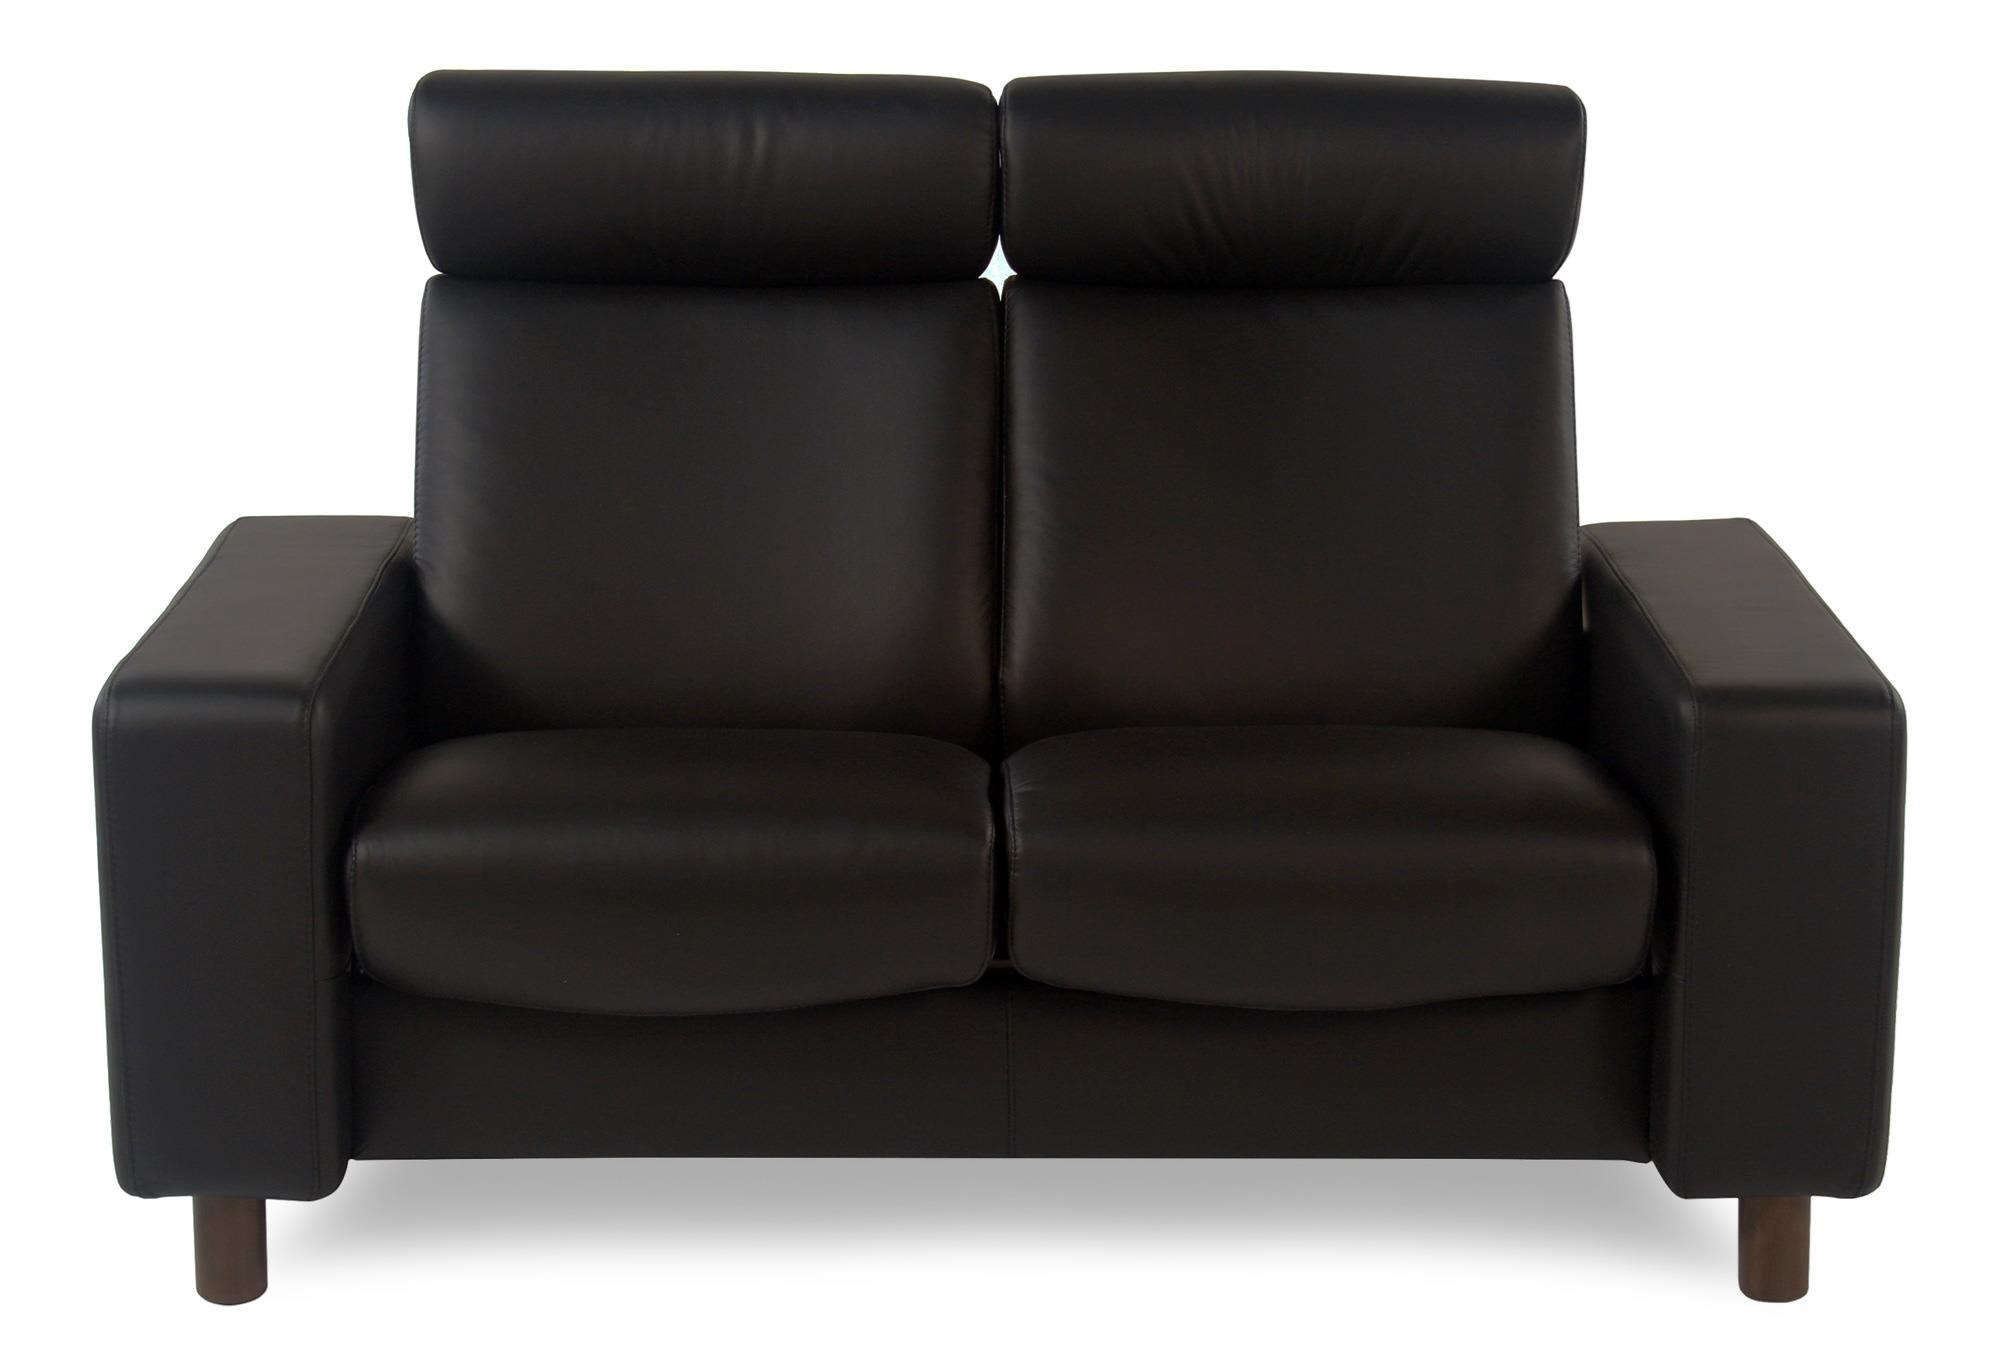 Stressless By Ekornes Pause2 Seat High Back Loveseat High Back Loveseat L47